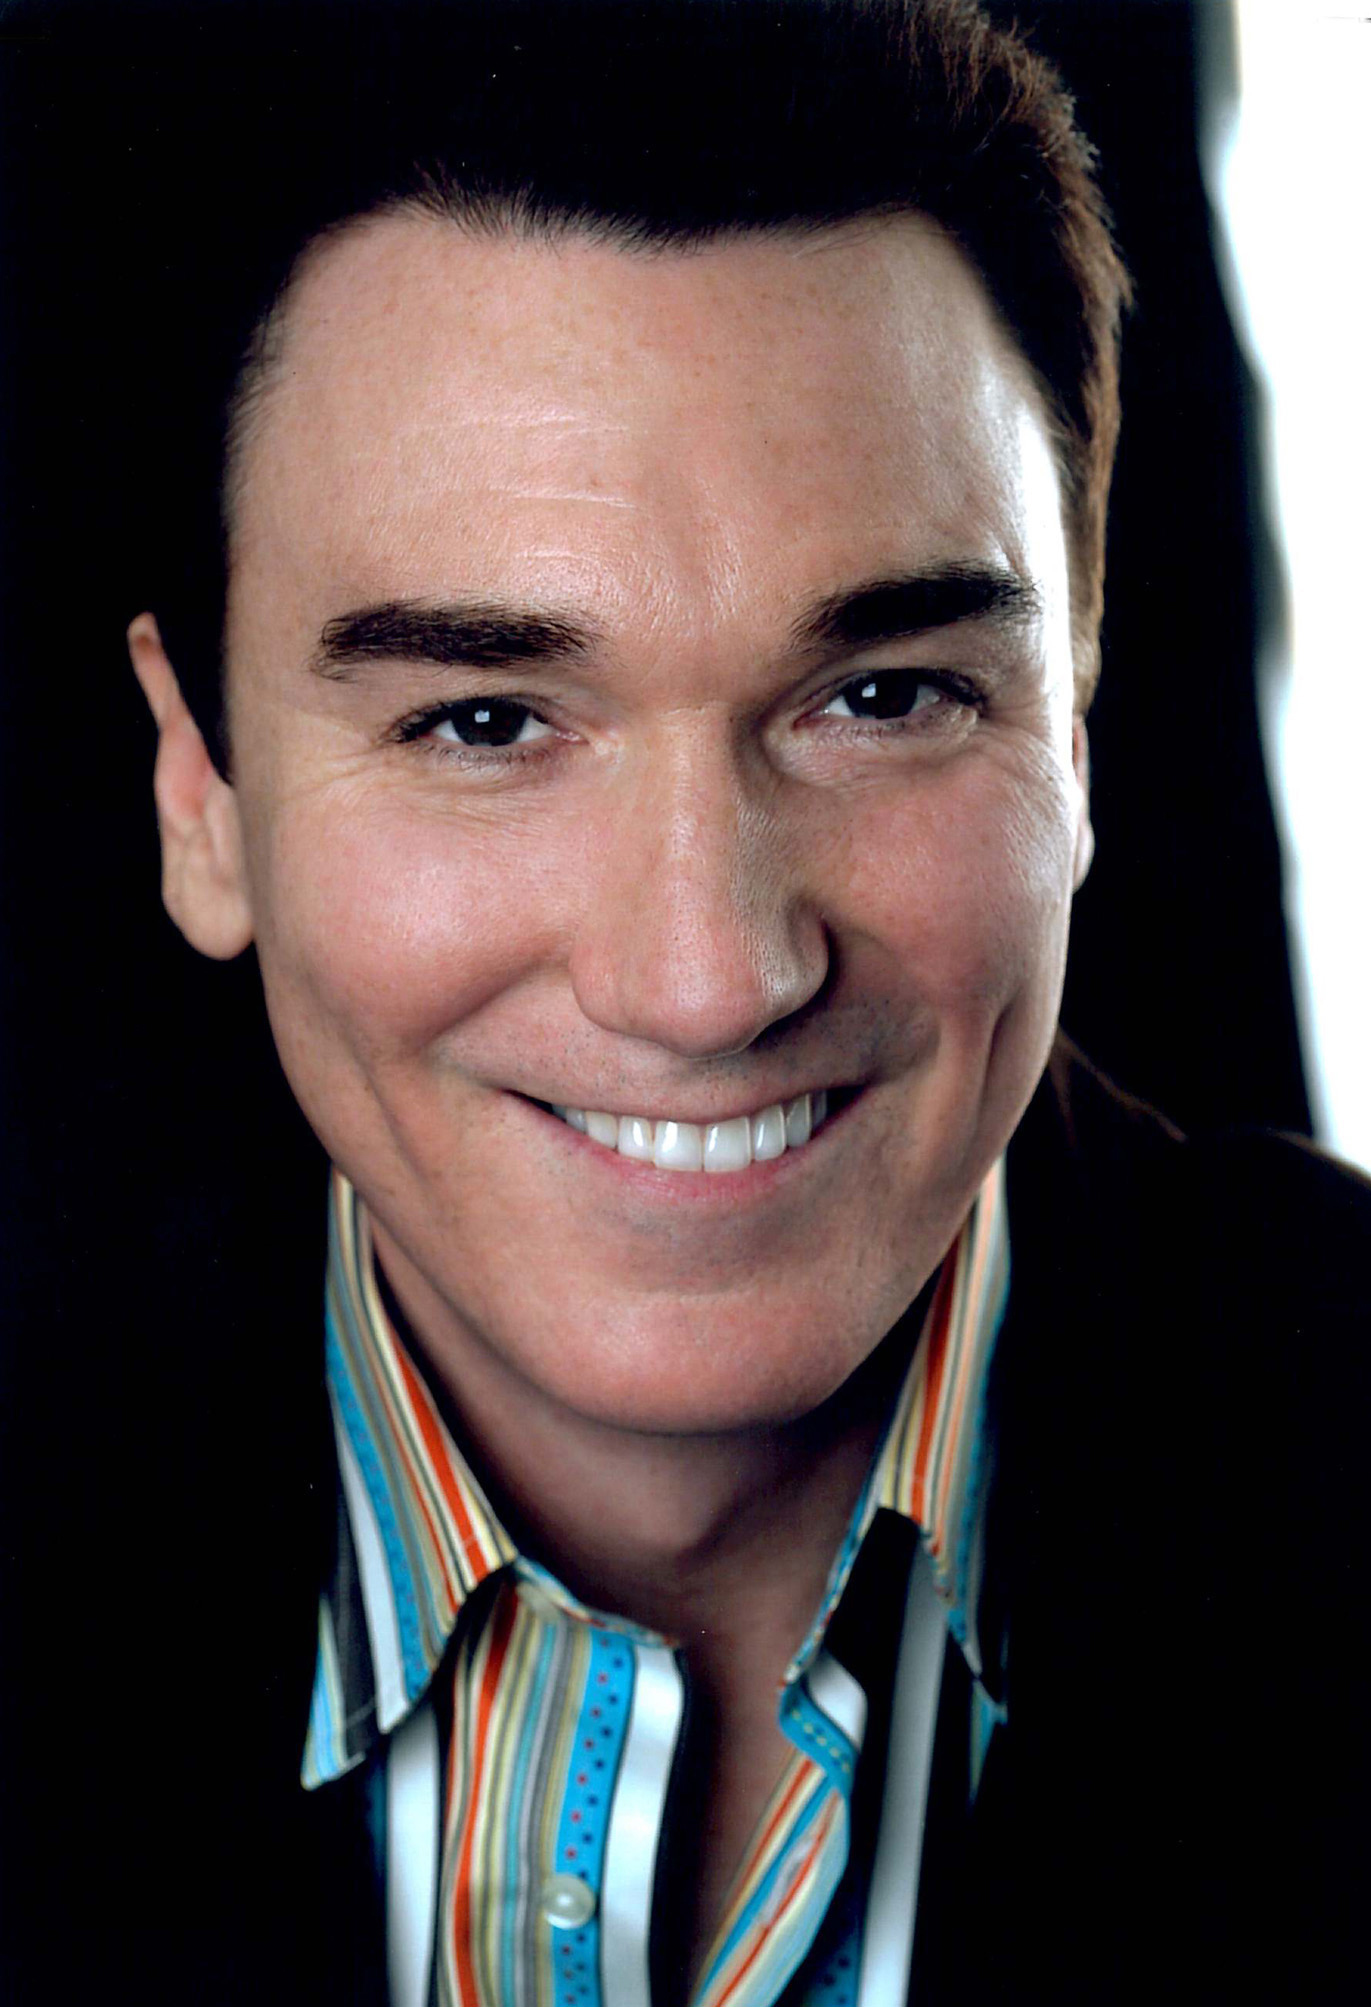 The handsome Patrick Page is a Broadway actor who has made frequent appearances on Valley stages.